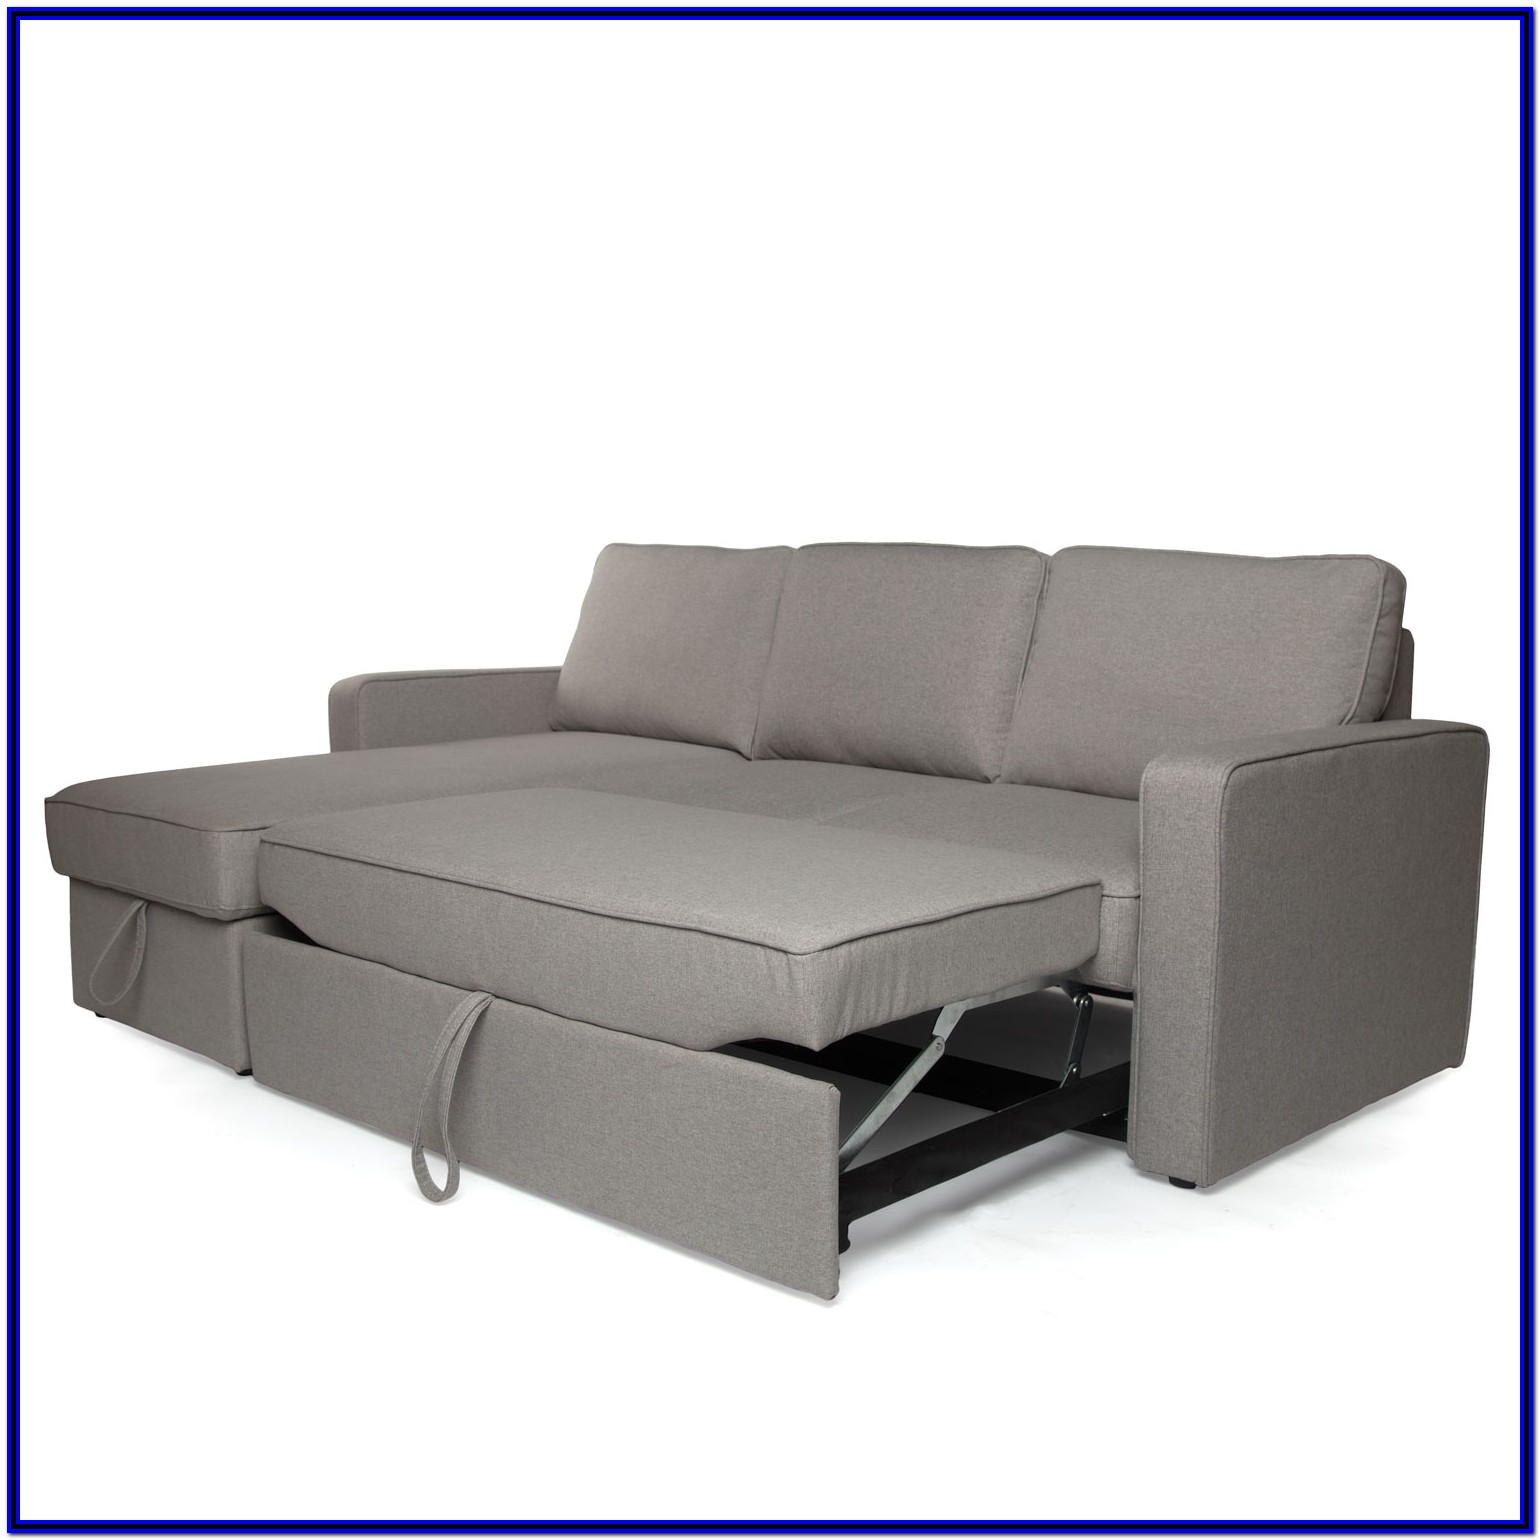 Sectional Sofa Pull Out Sleeper Bed Chaise Underneath Storage